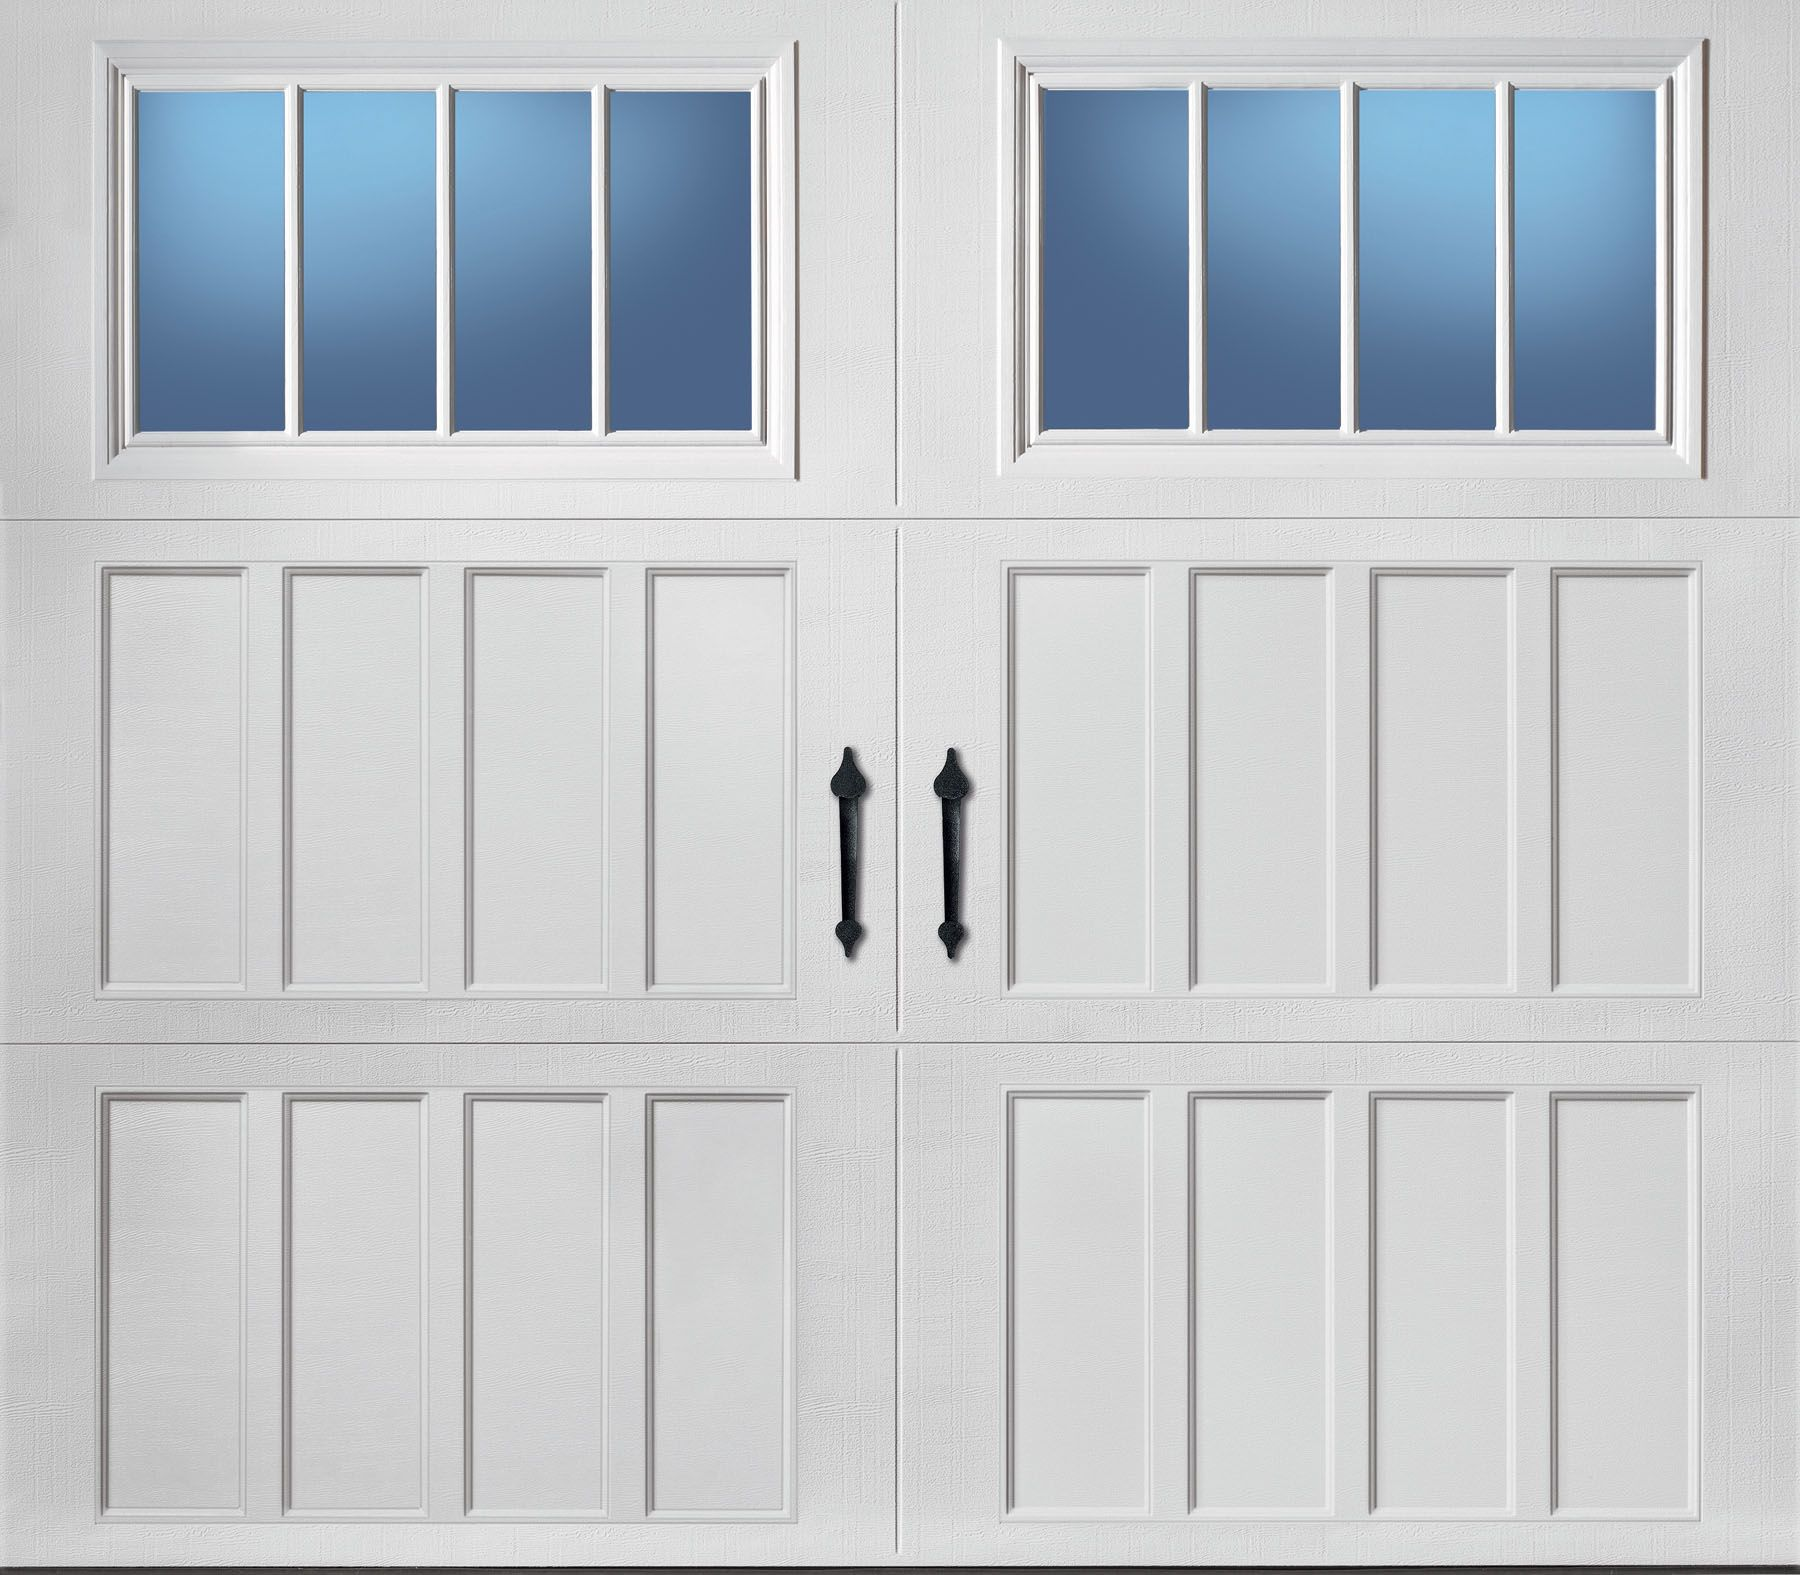 ideas design nicest plus good brooklyn layout gallery doors ultimate door styles garage overhead